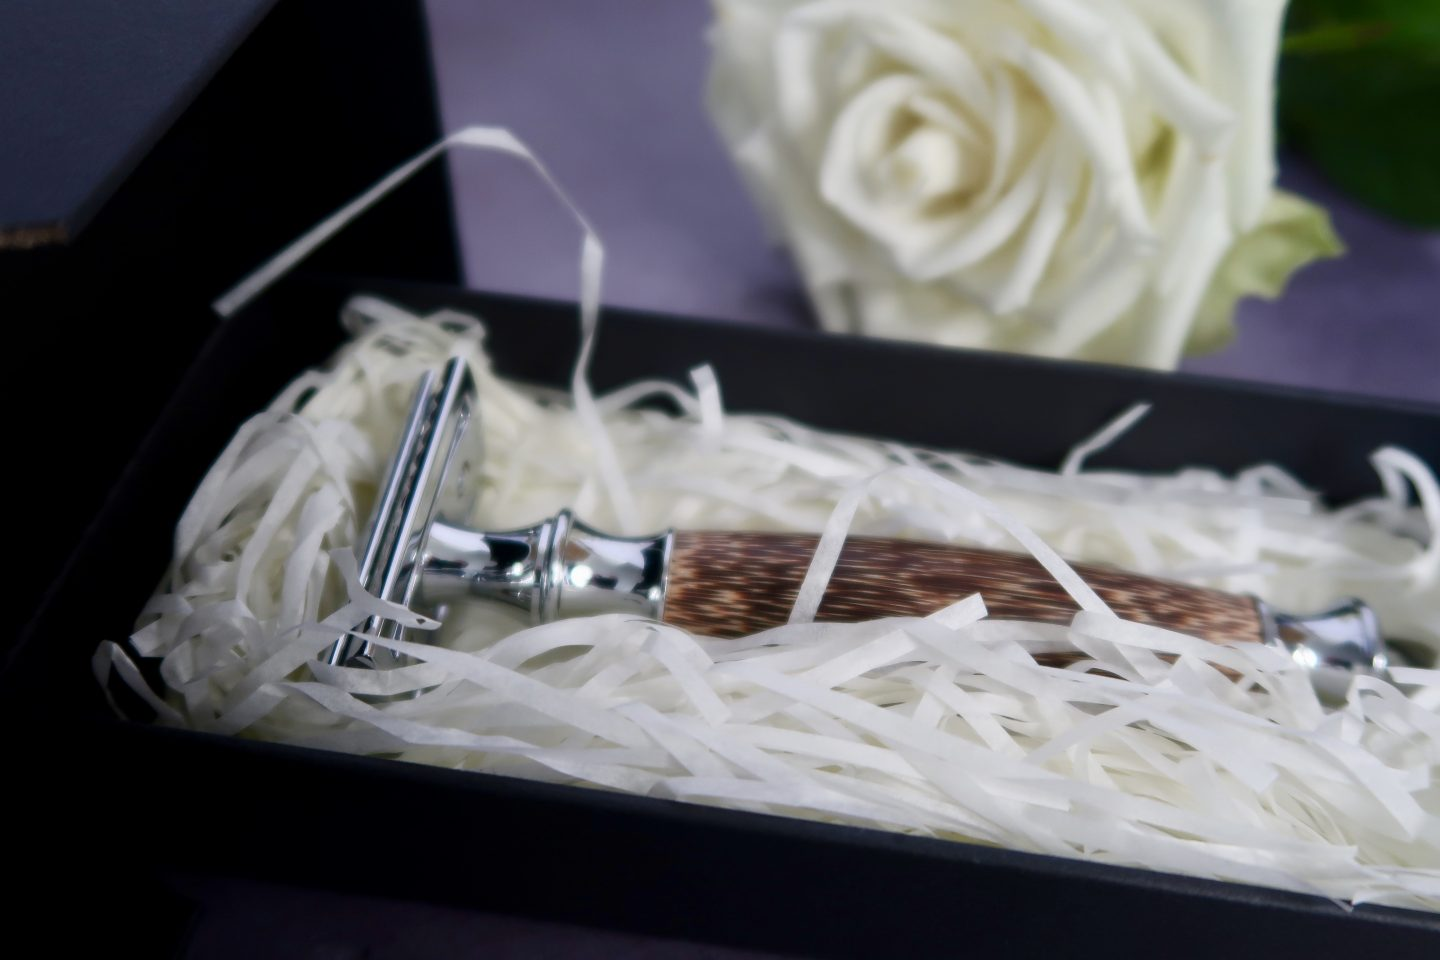 A wooden handled plastic free razor sitting in shredded paper within a box. A white rose is out of focus in the background